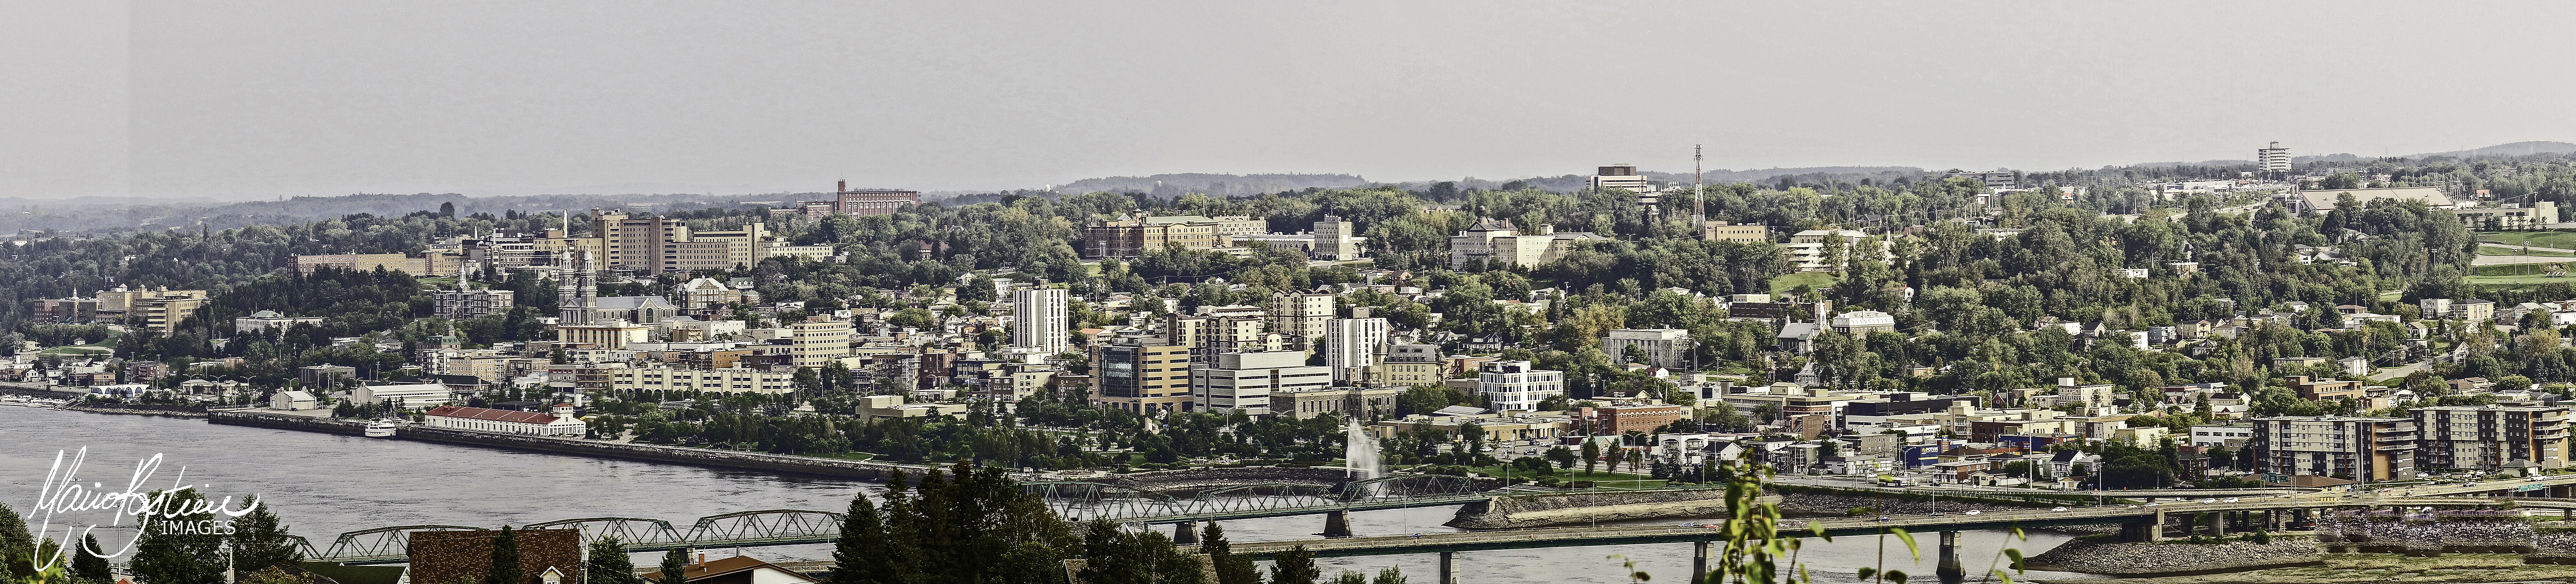 Chicoutimi, Saguenay